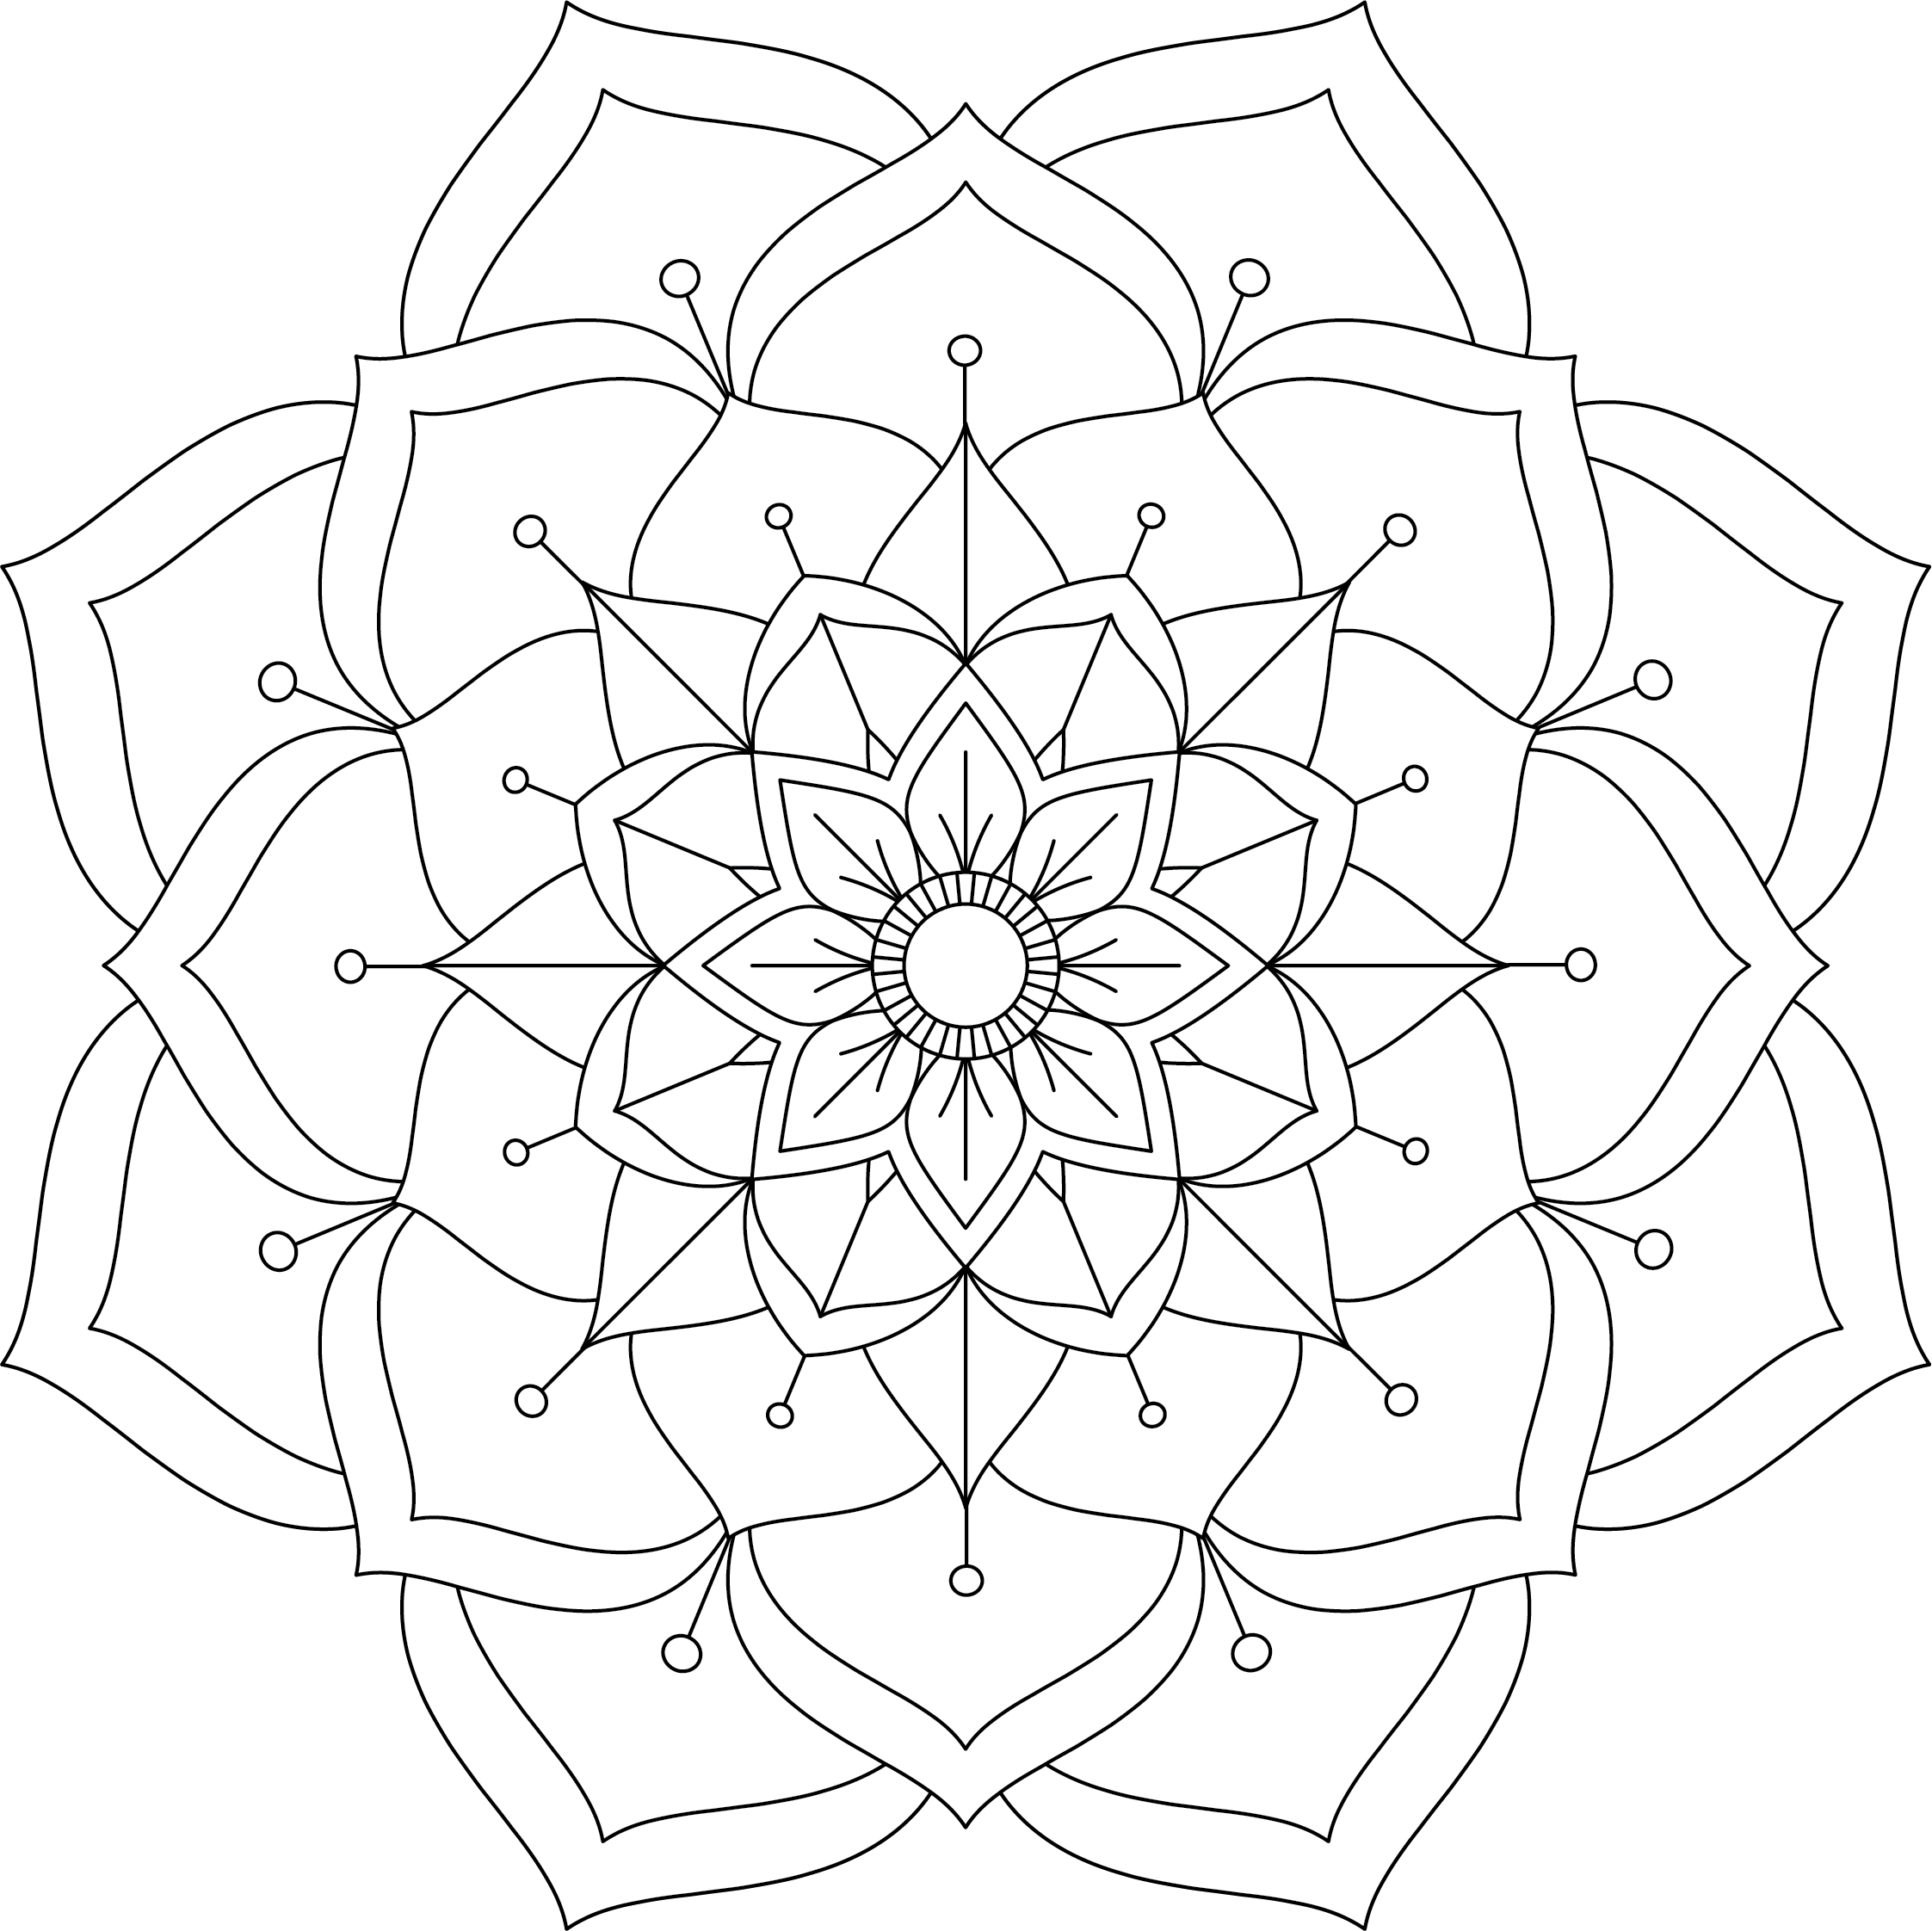 Mandala Monday Free Design To Download And Colour 2019 - 11